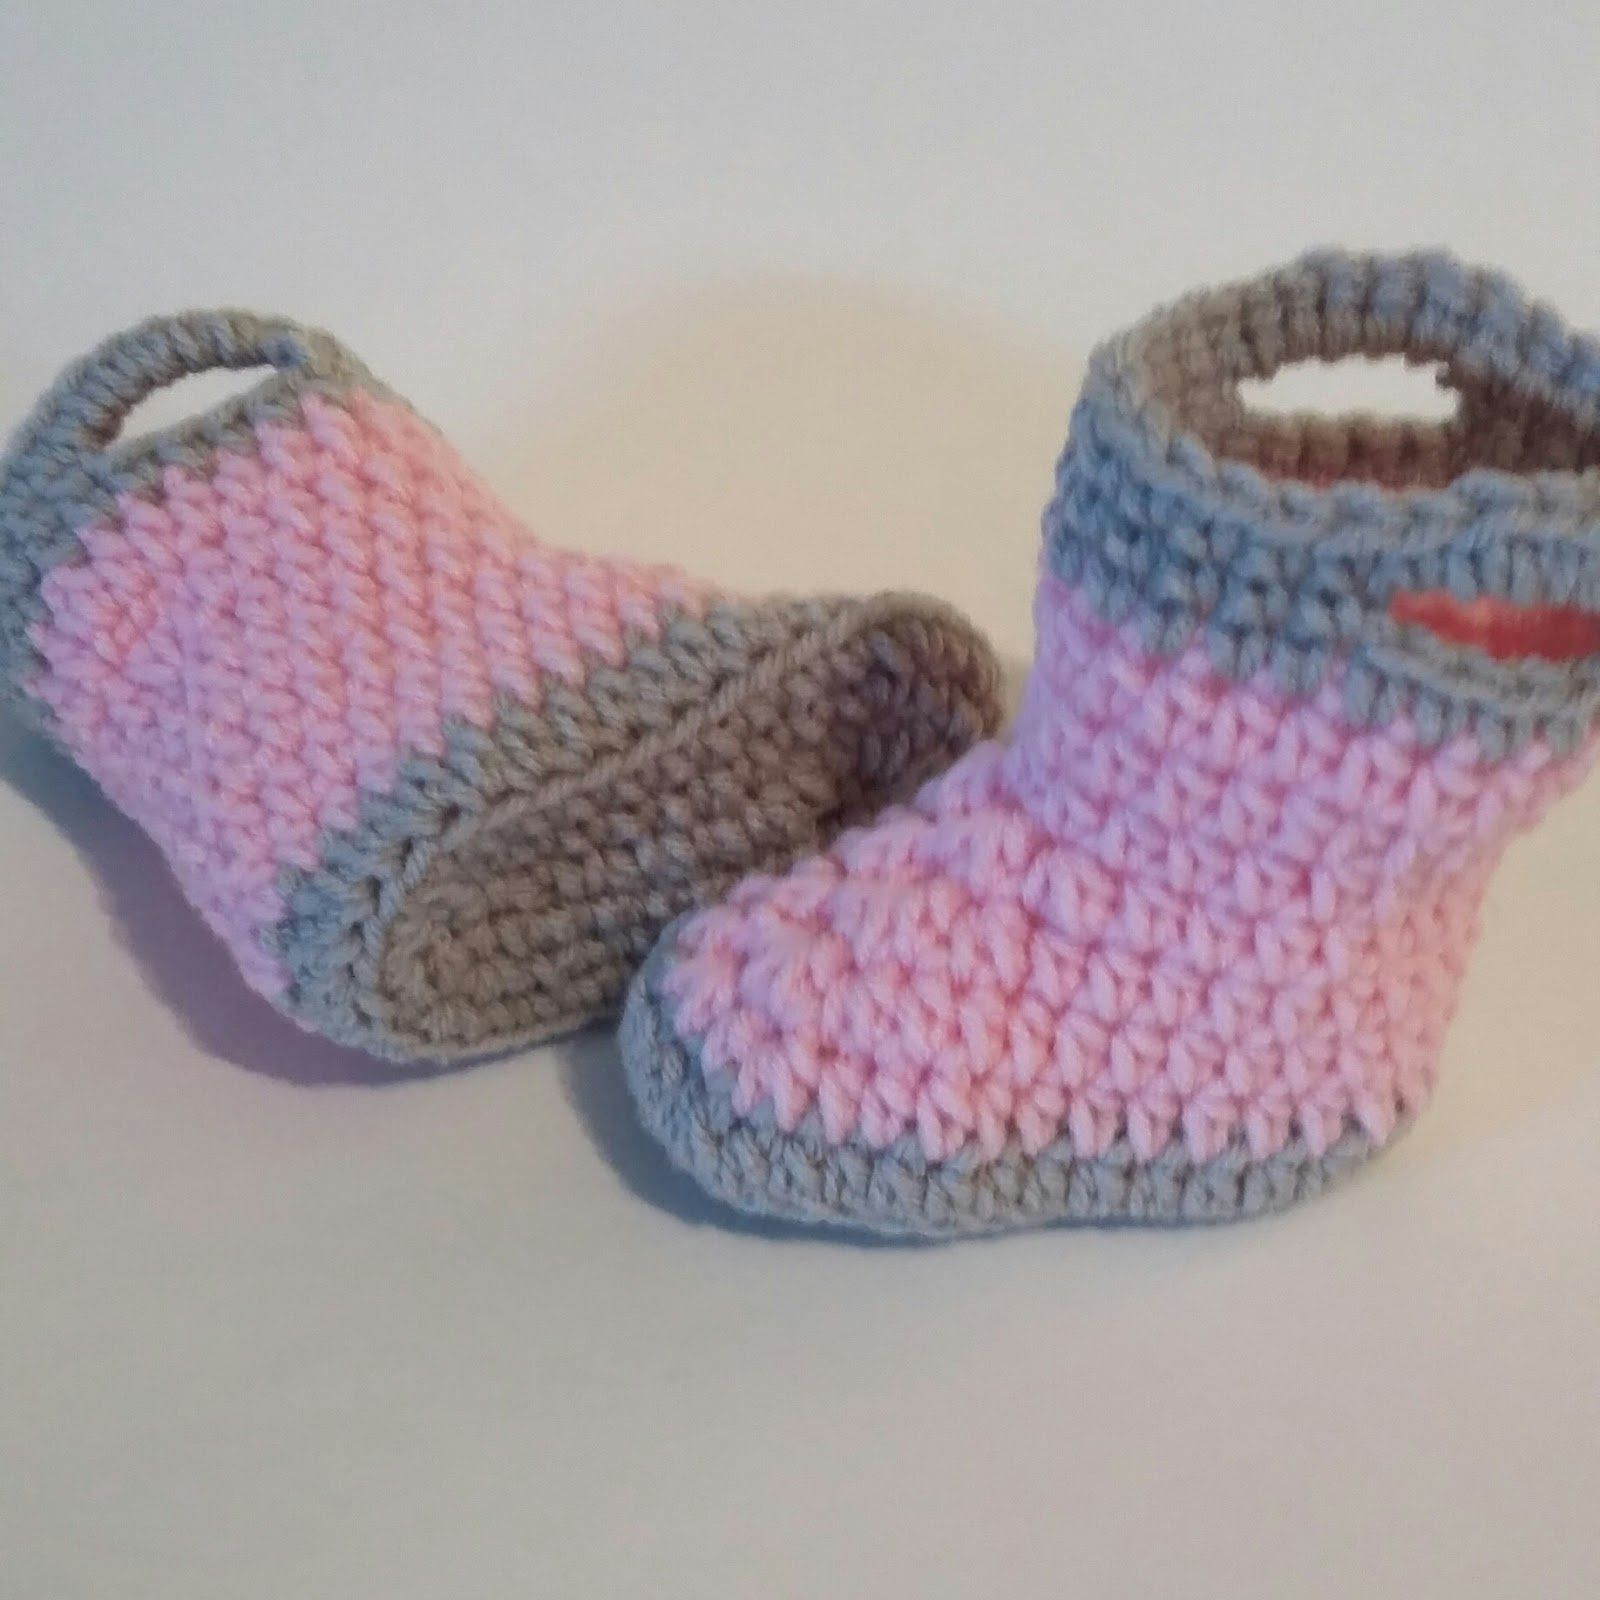 13467aa5251e FREE PATTERN for baby booties (Fireman boots or Wellingtons ...